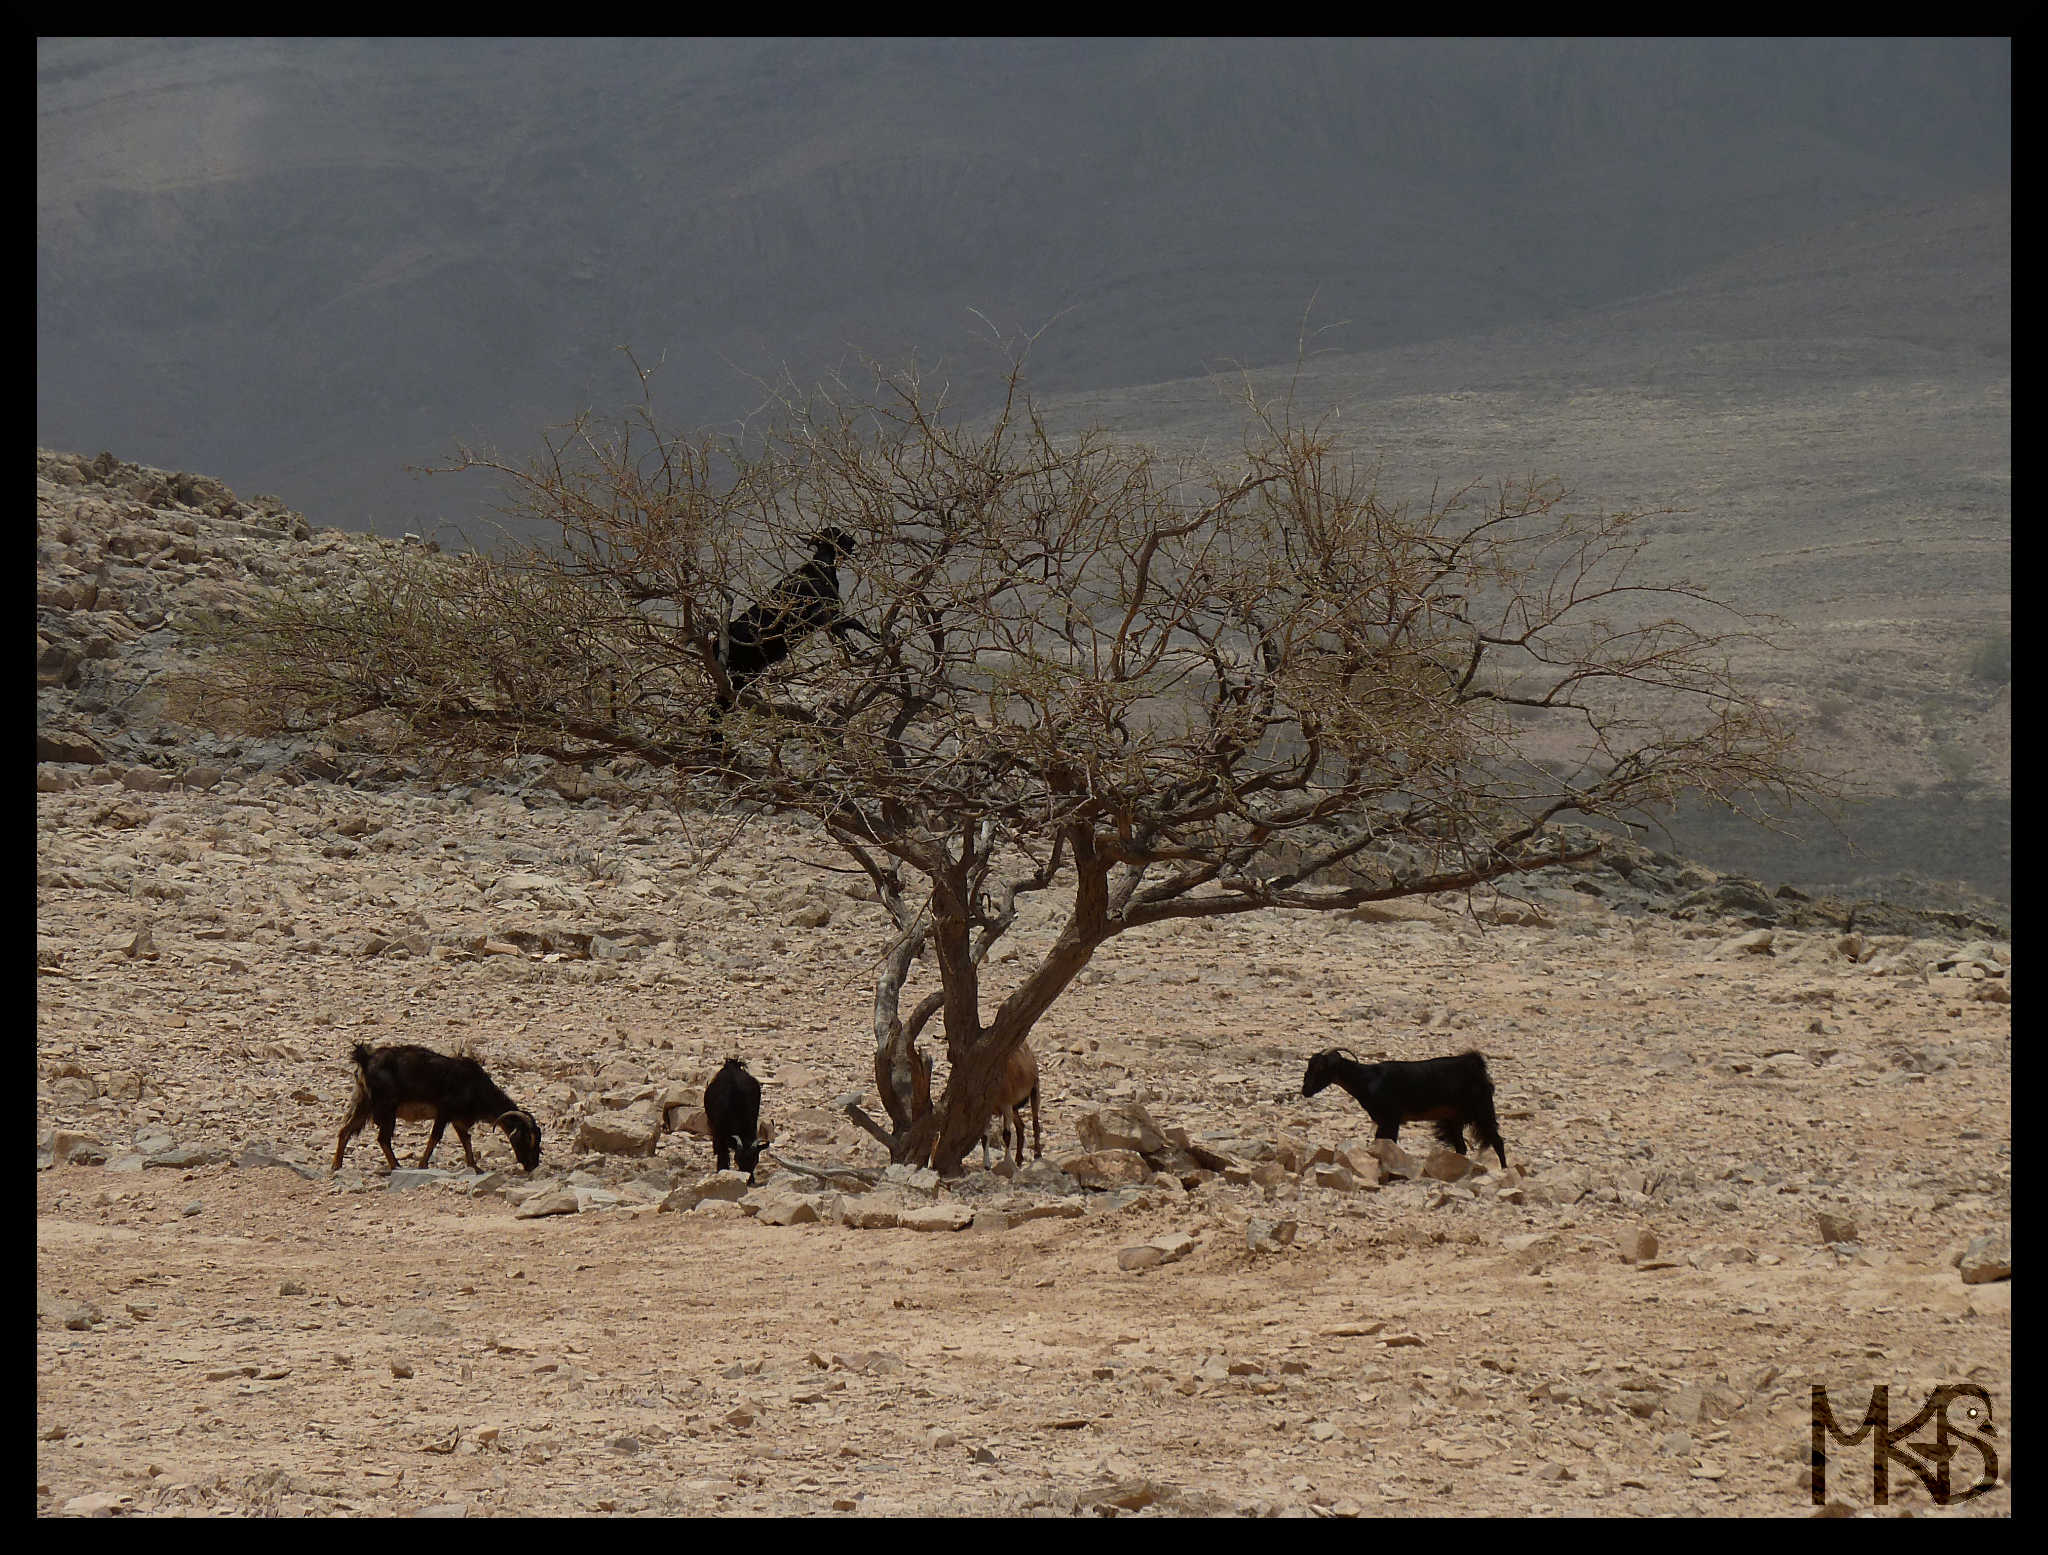 Goats in Oman